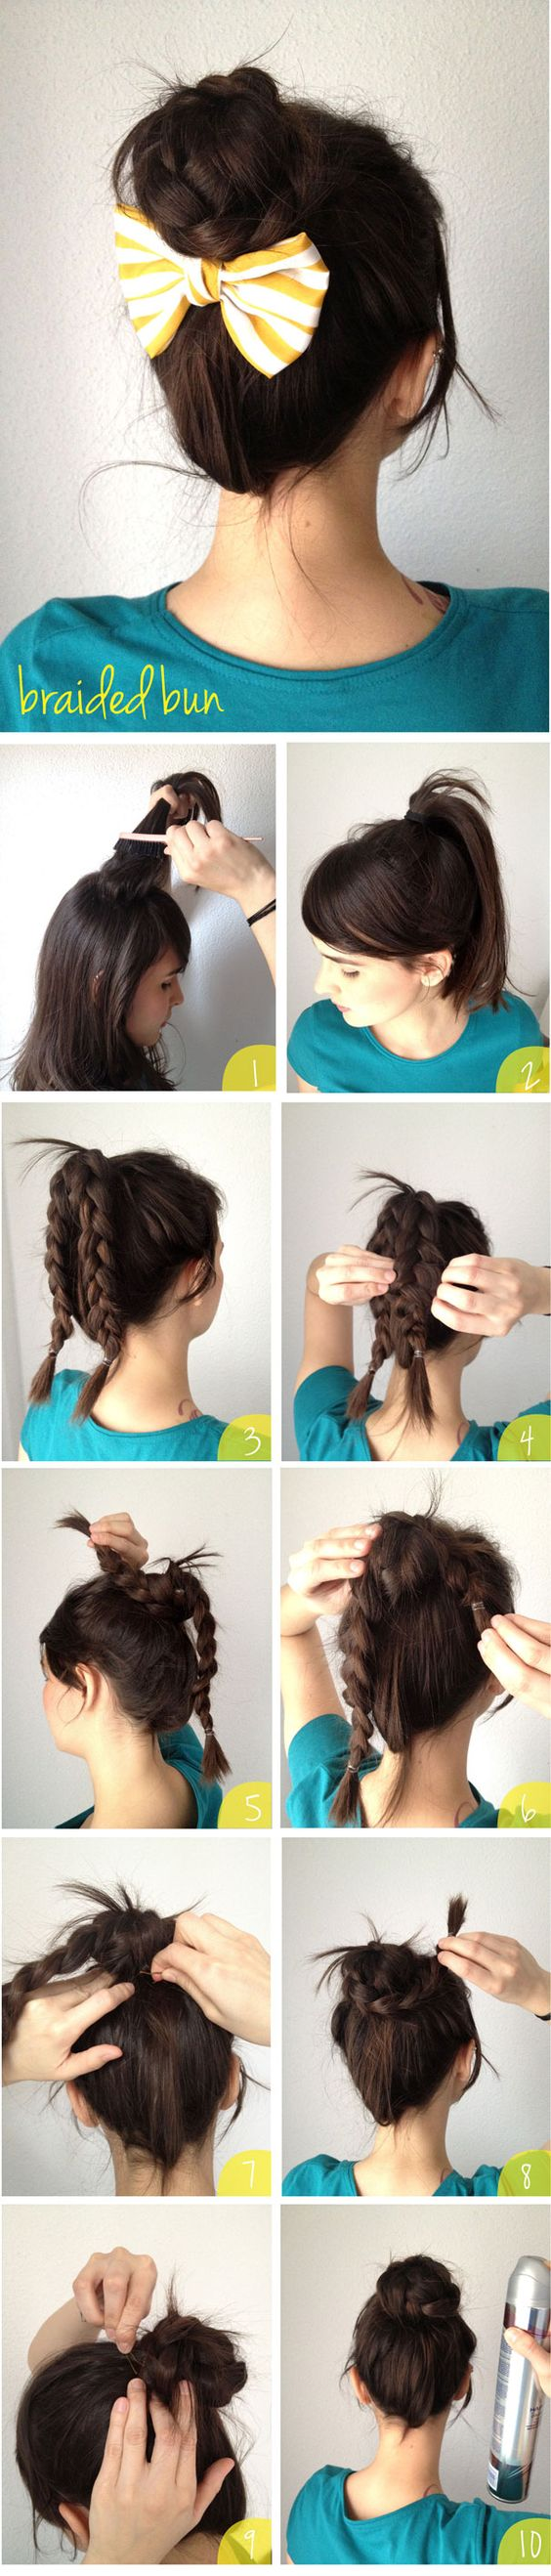 Braided Bun: